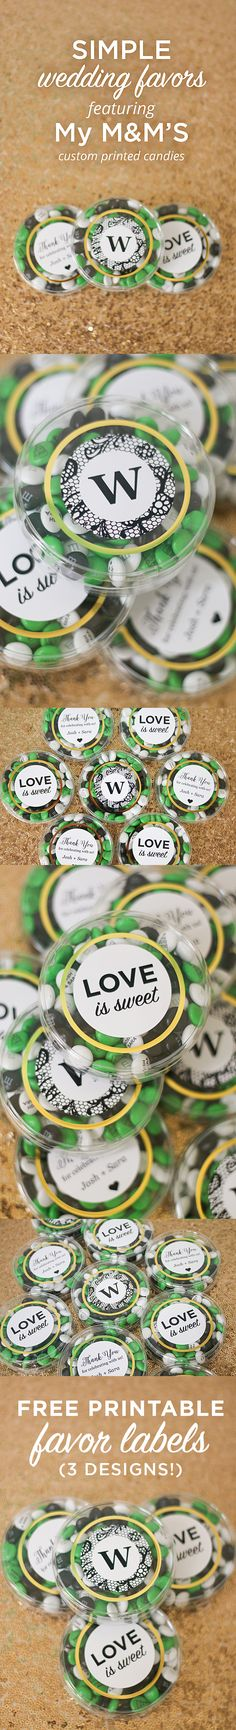 Simple Wedding Favors featuring My M&M'S! (Plus free printables